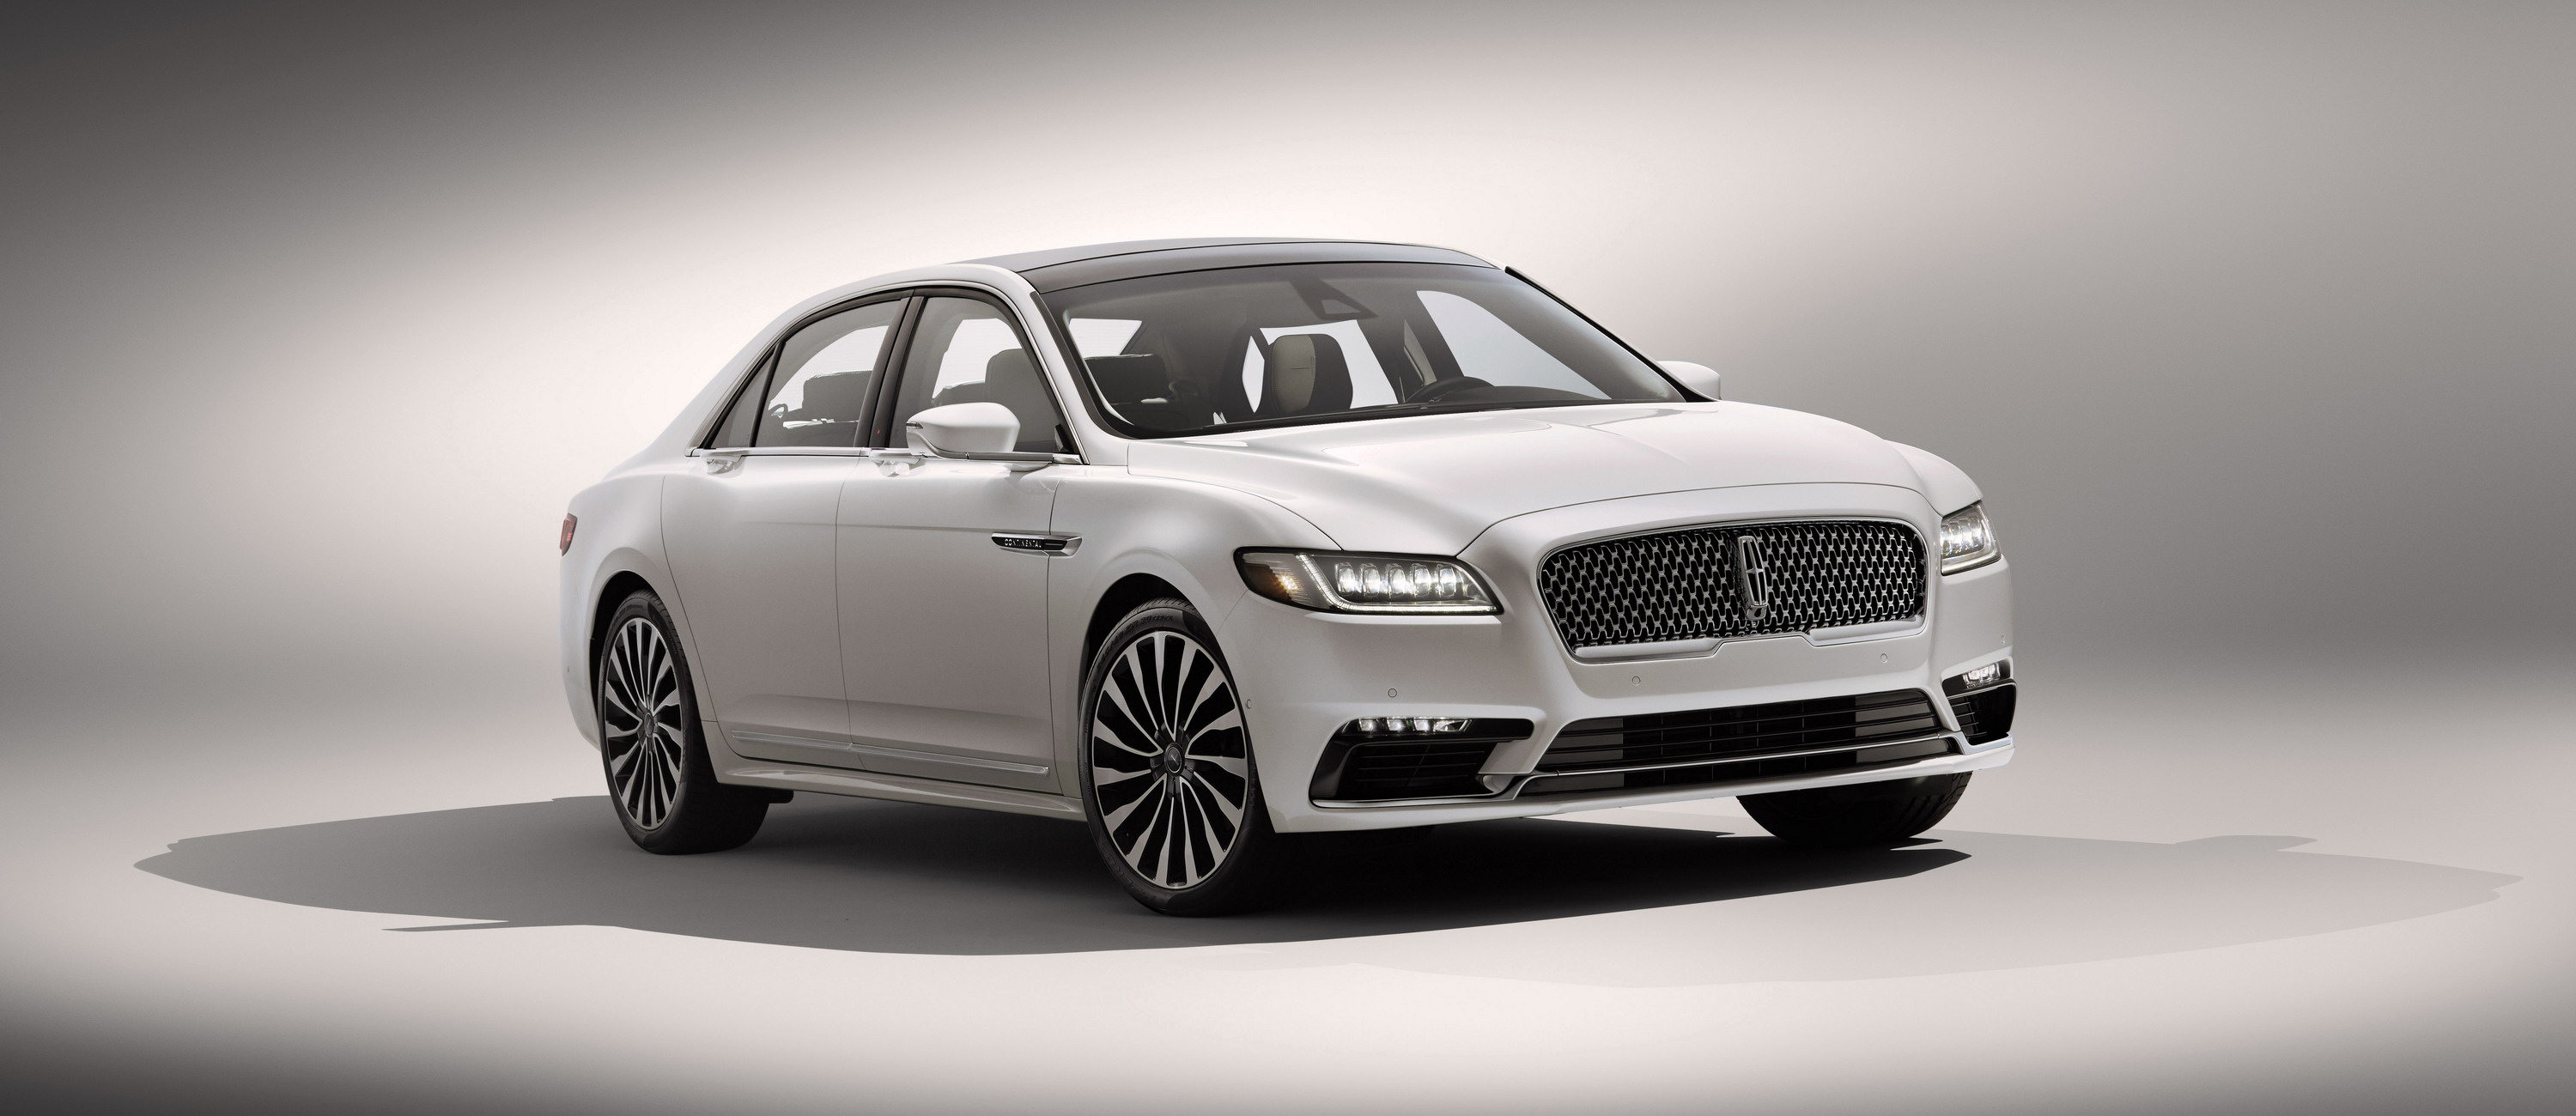 Despite Ford S Execution Of Sedans Lincoln Says That It Remains